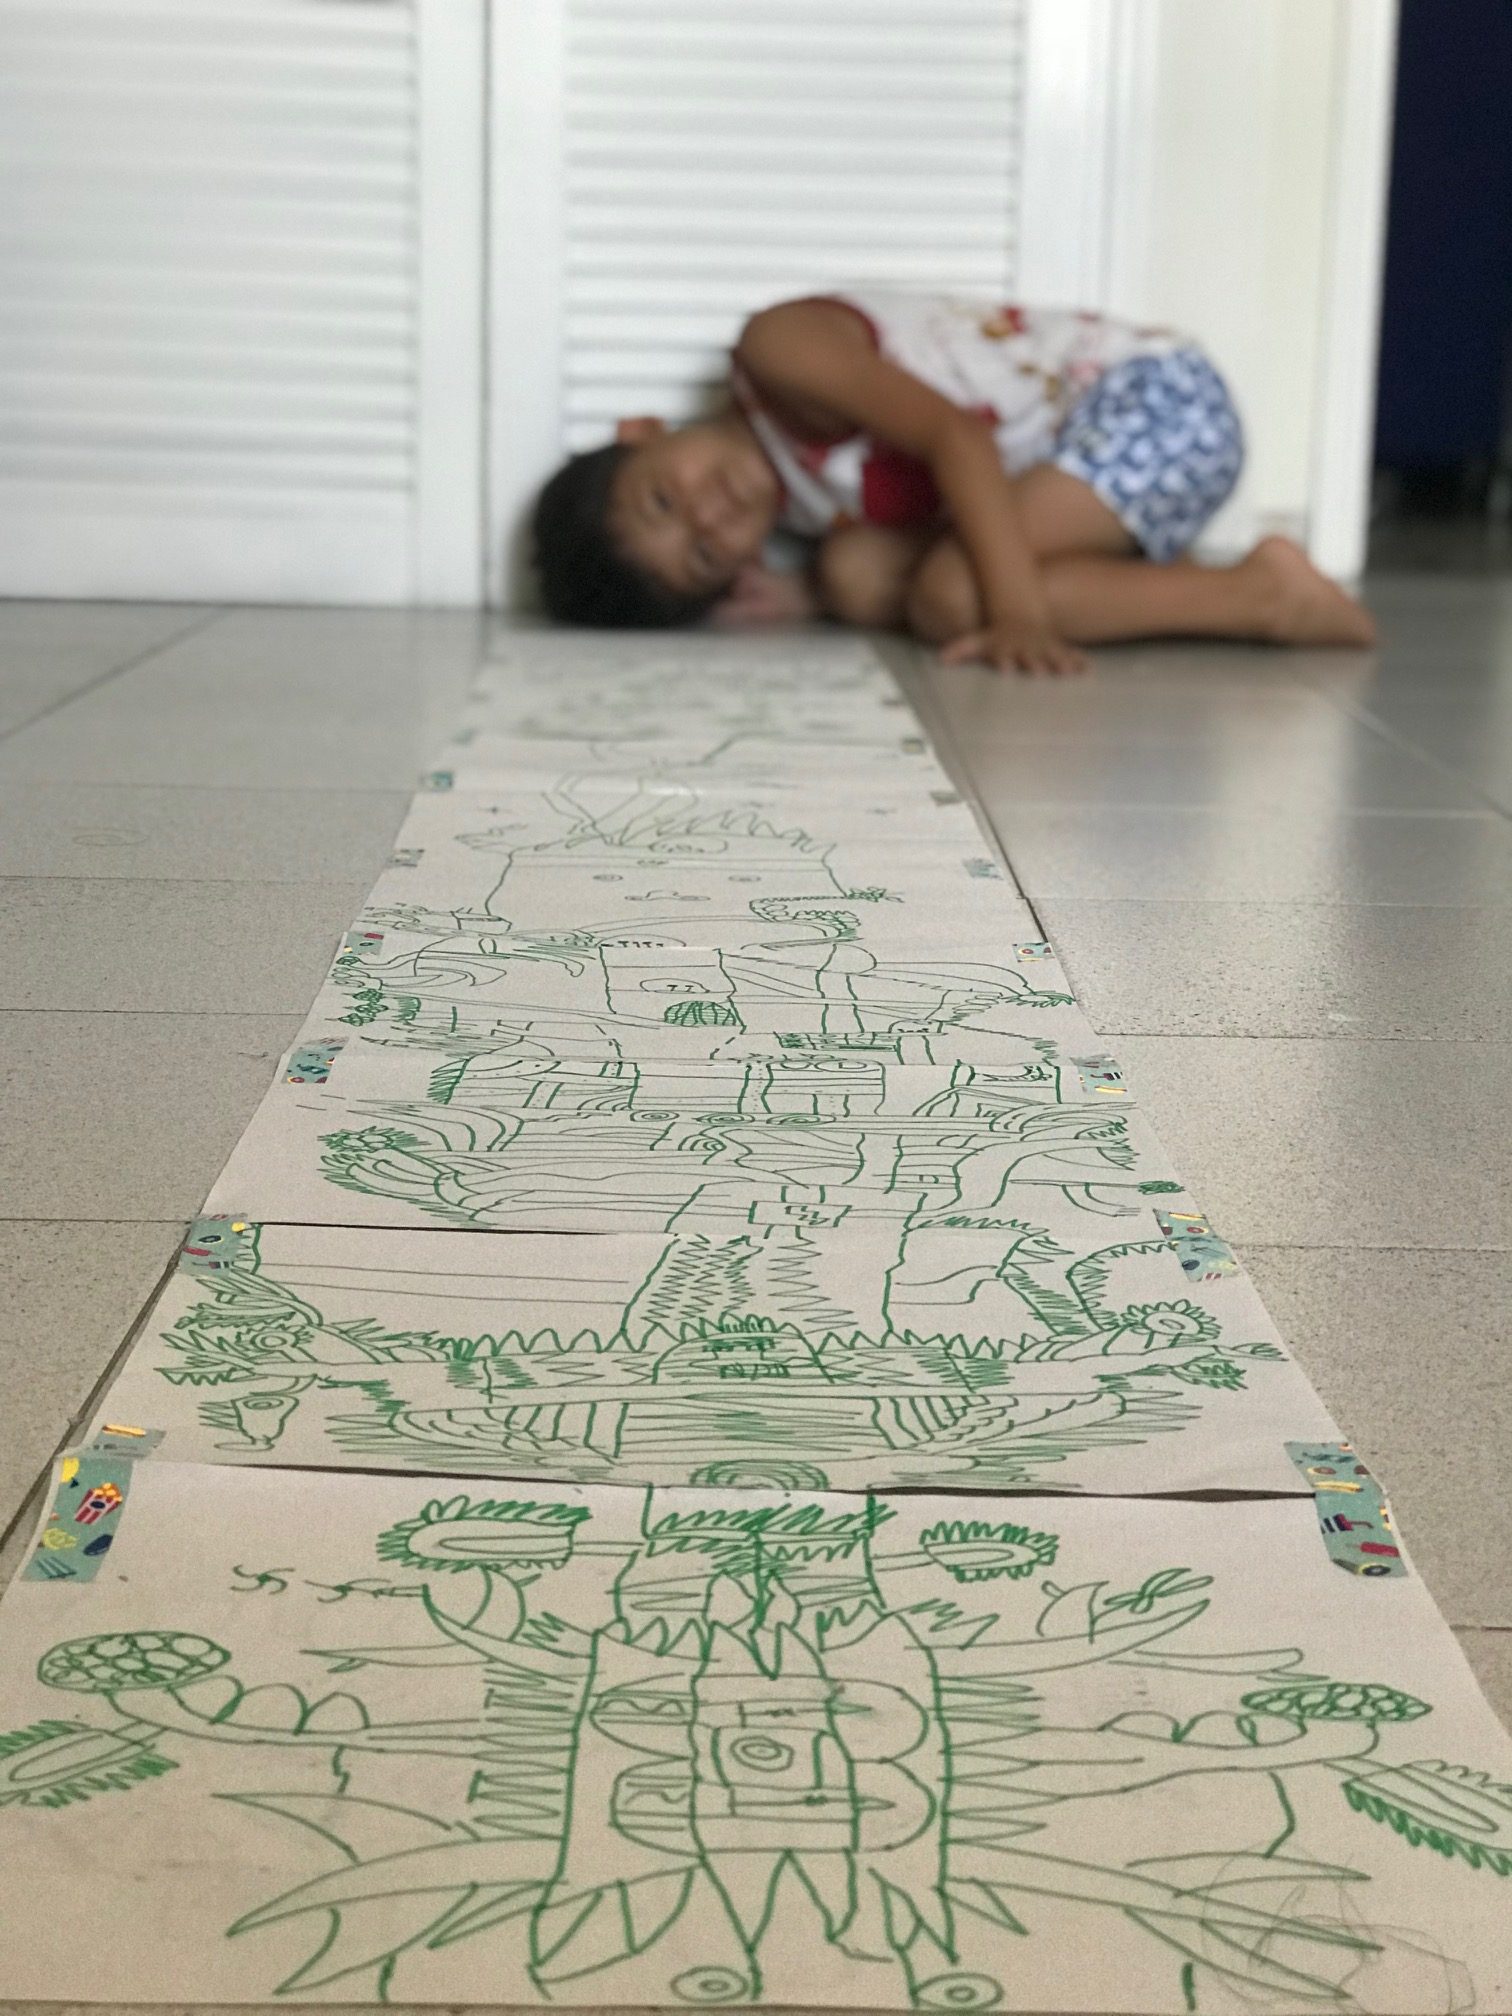 Martin (7) with a twice his size drawing he did while on our vacations in Colombia recently.